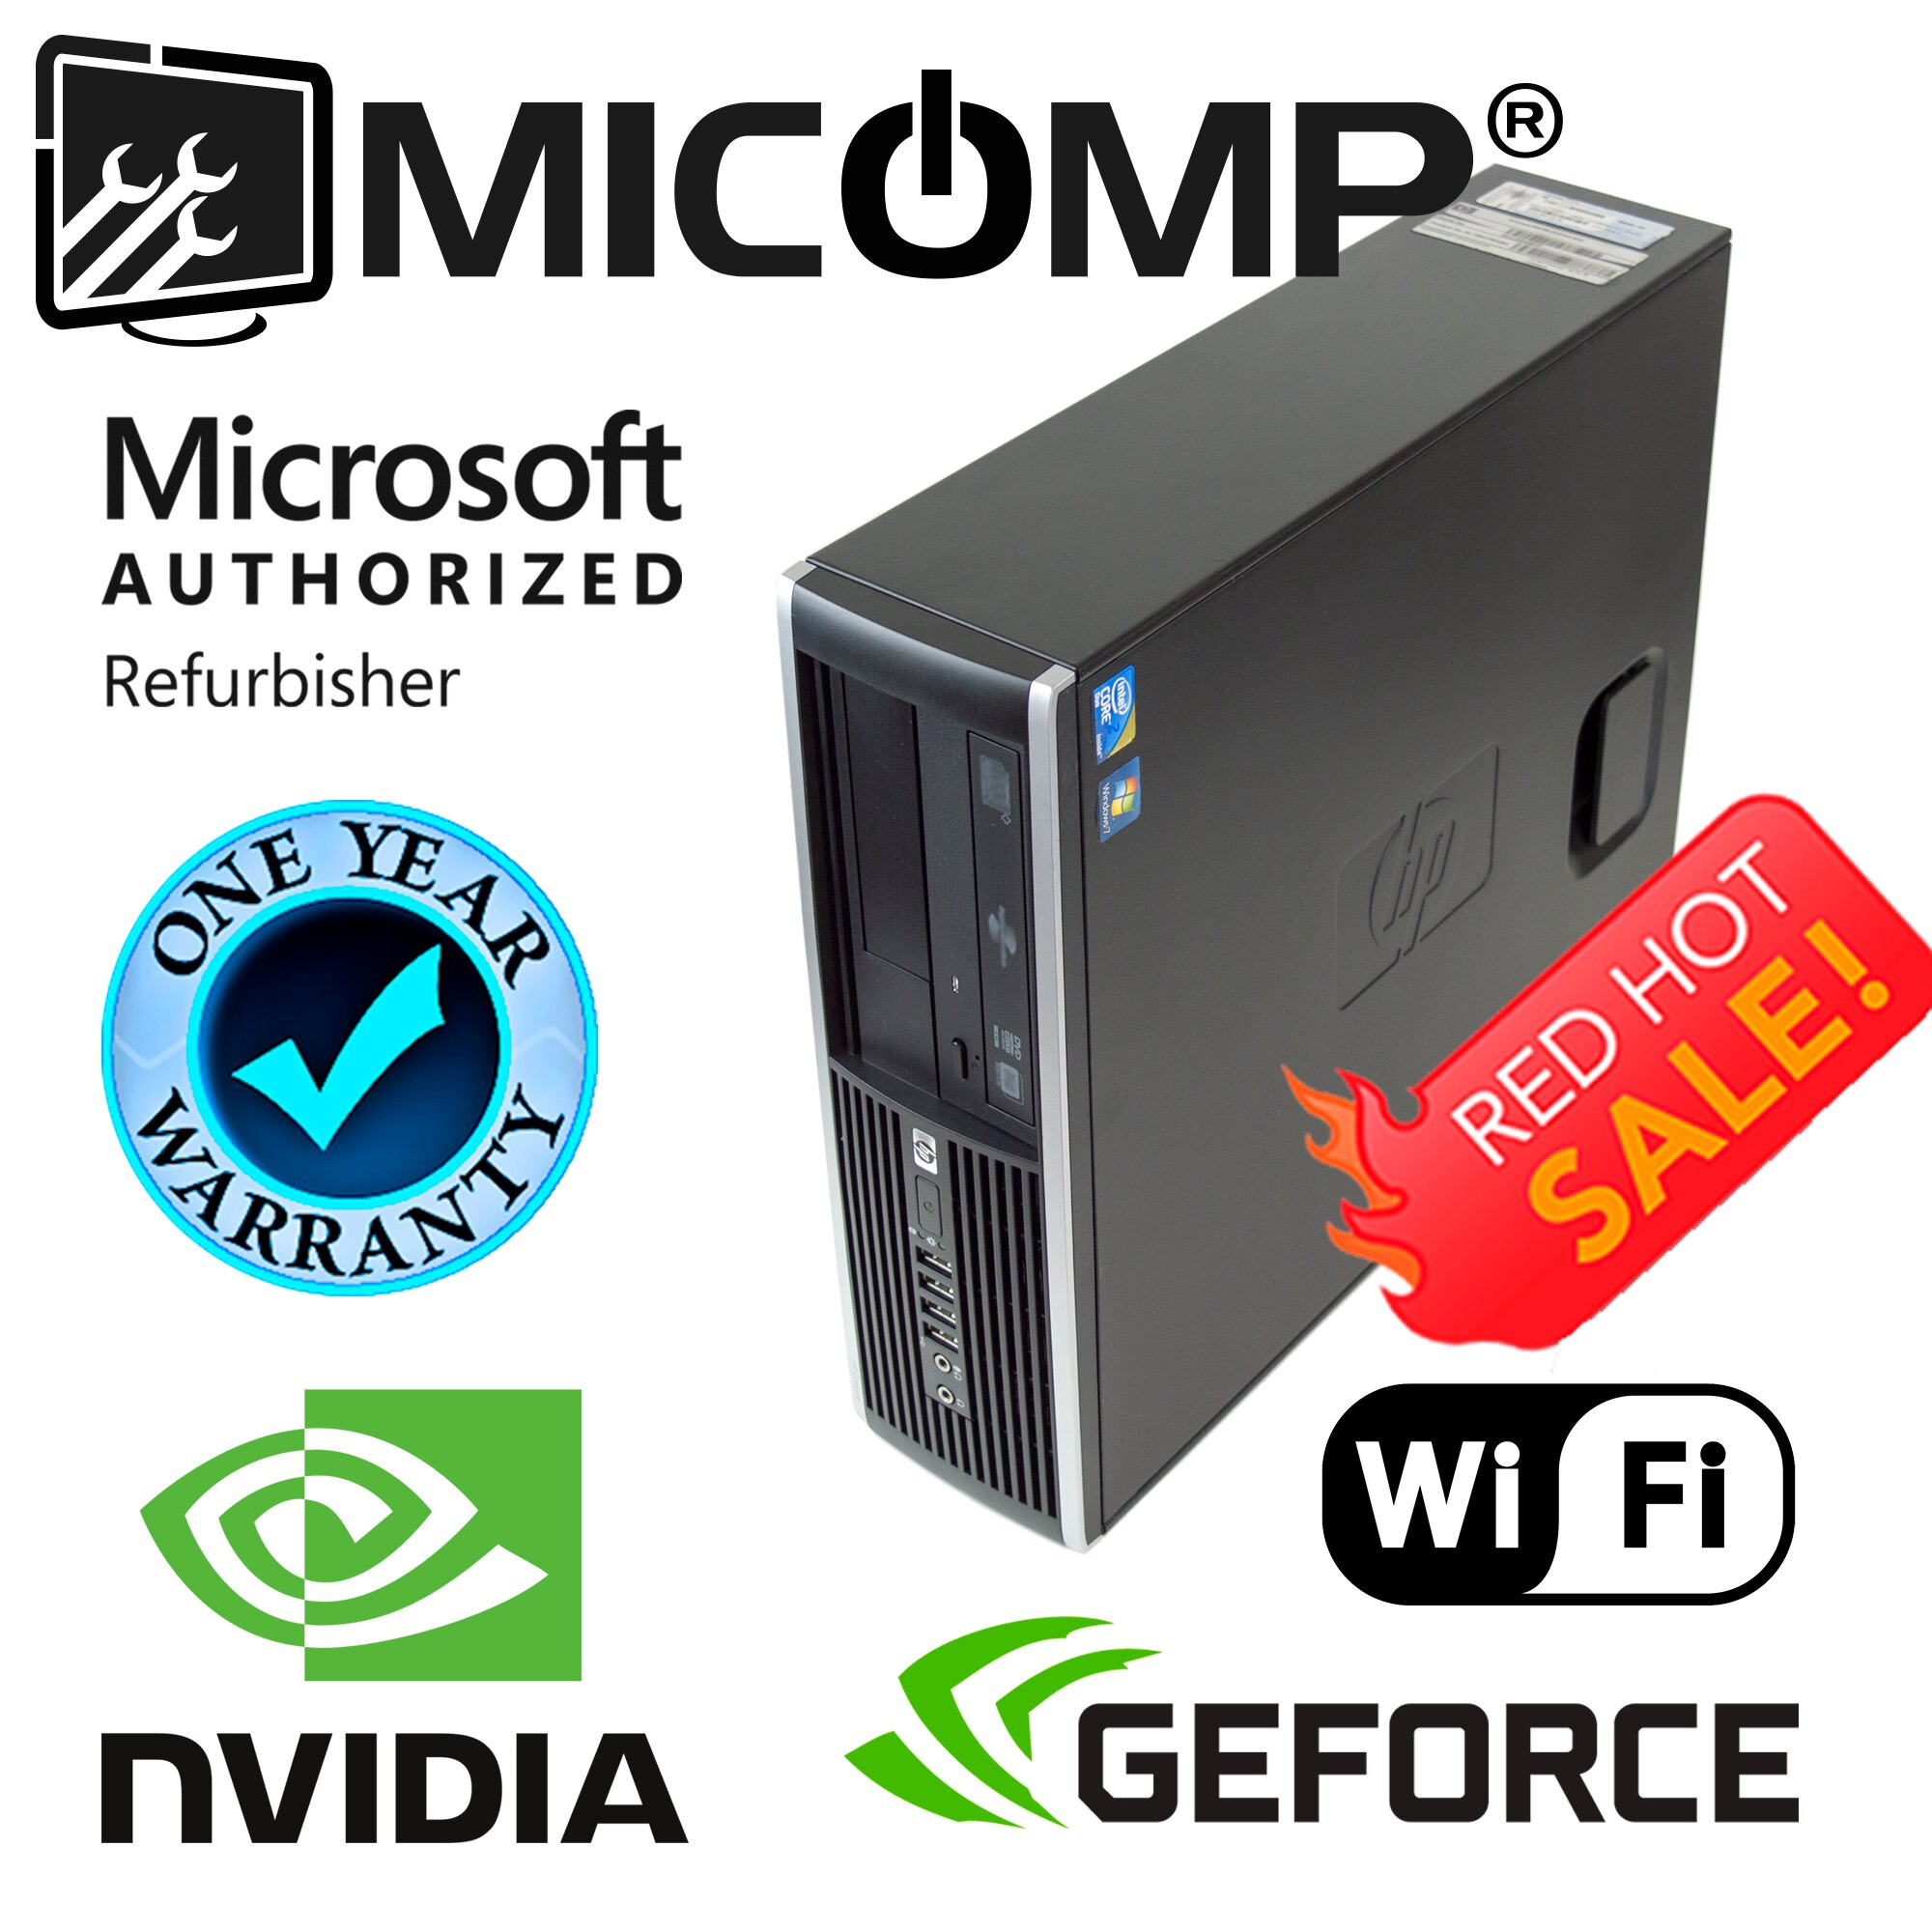 MICOMP: Fast HP Gaming Computer Nvidia GT 1030 Video Core i5